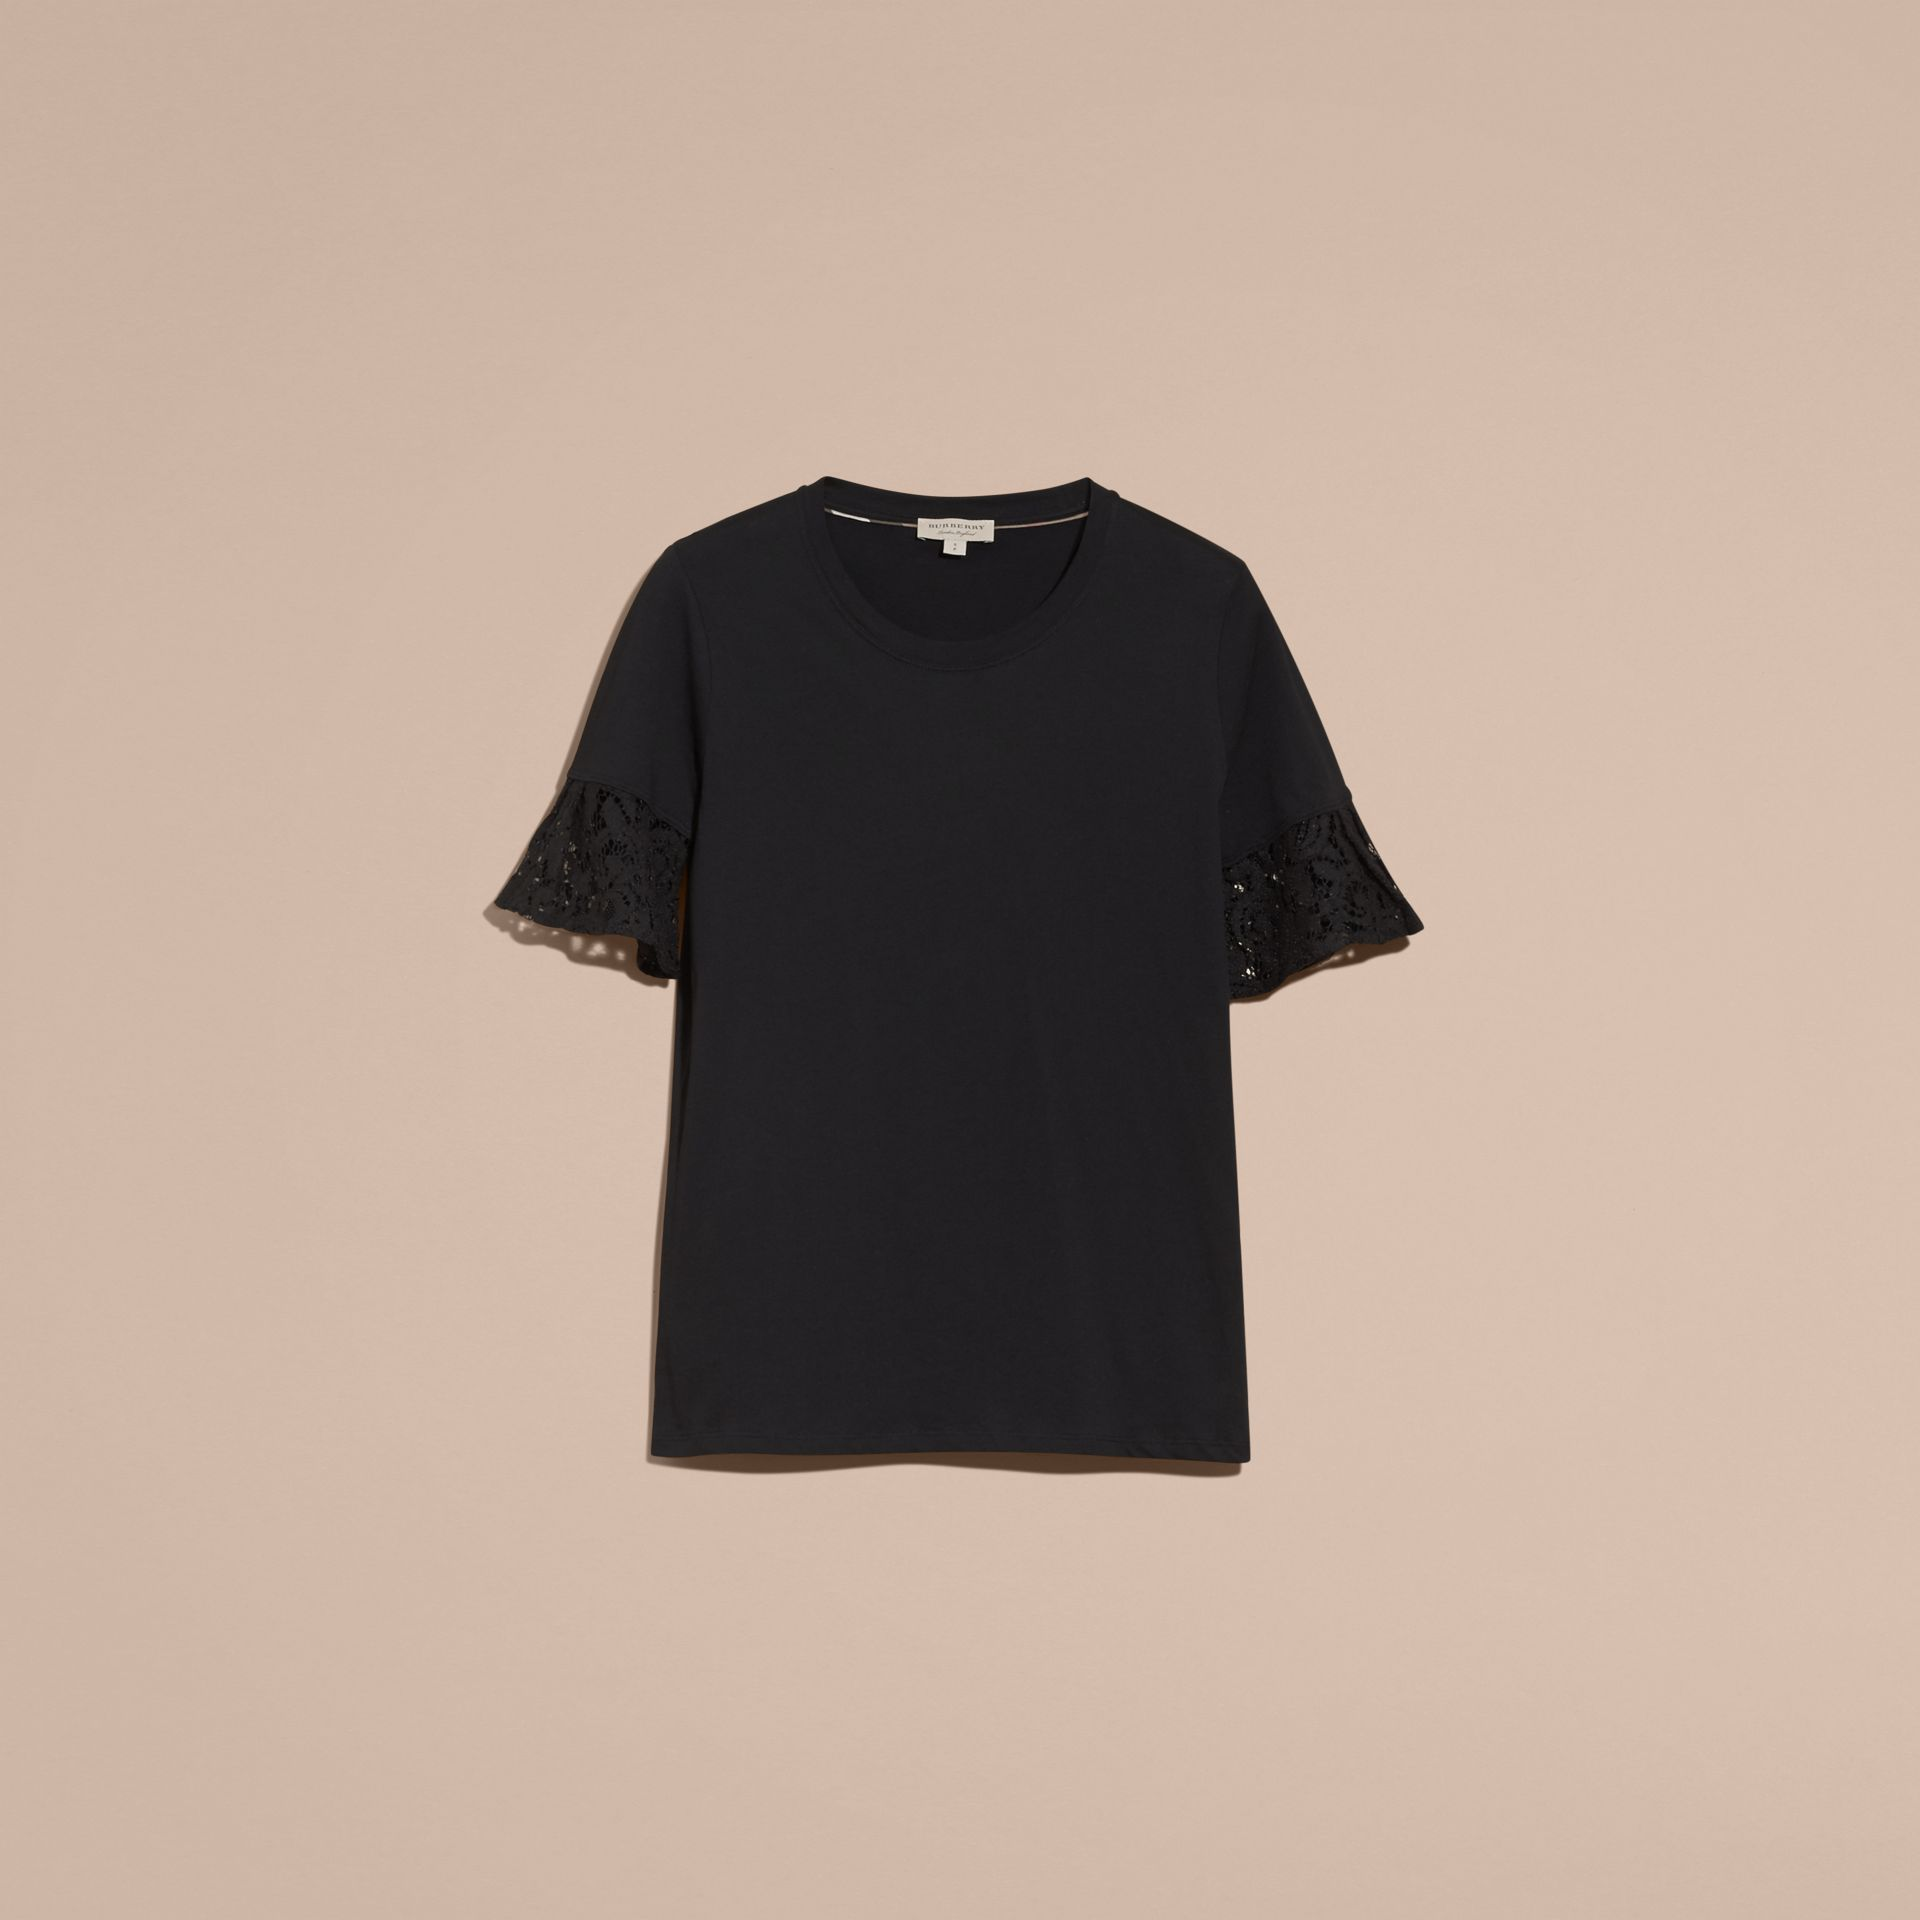 Black Lace Trim Cotton T-shirt Black - gallery image 4